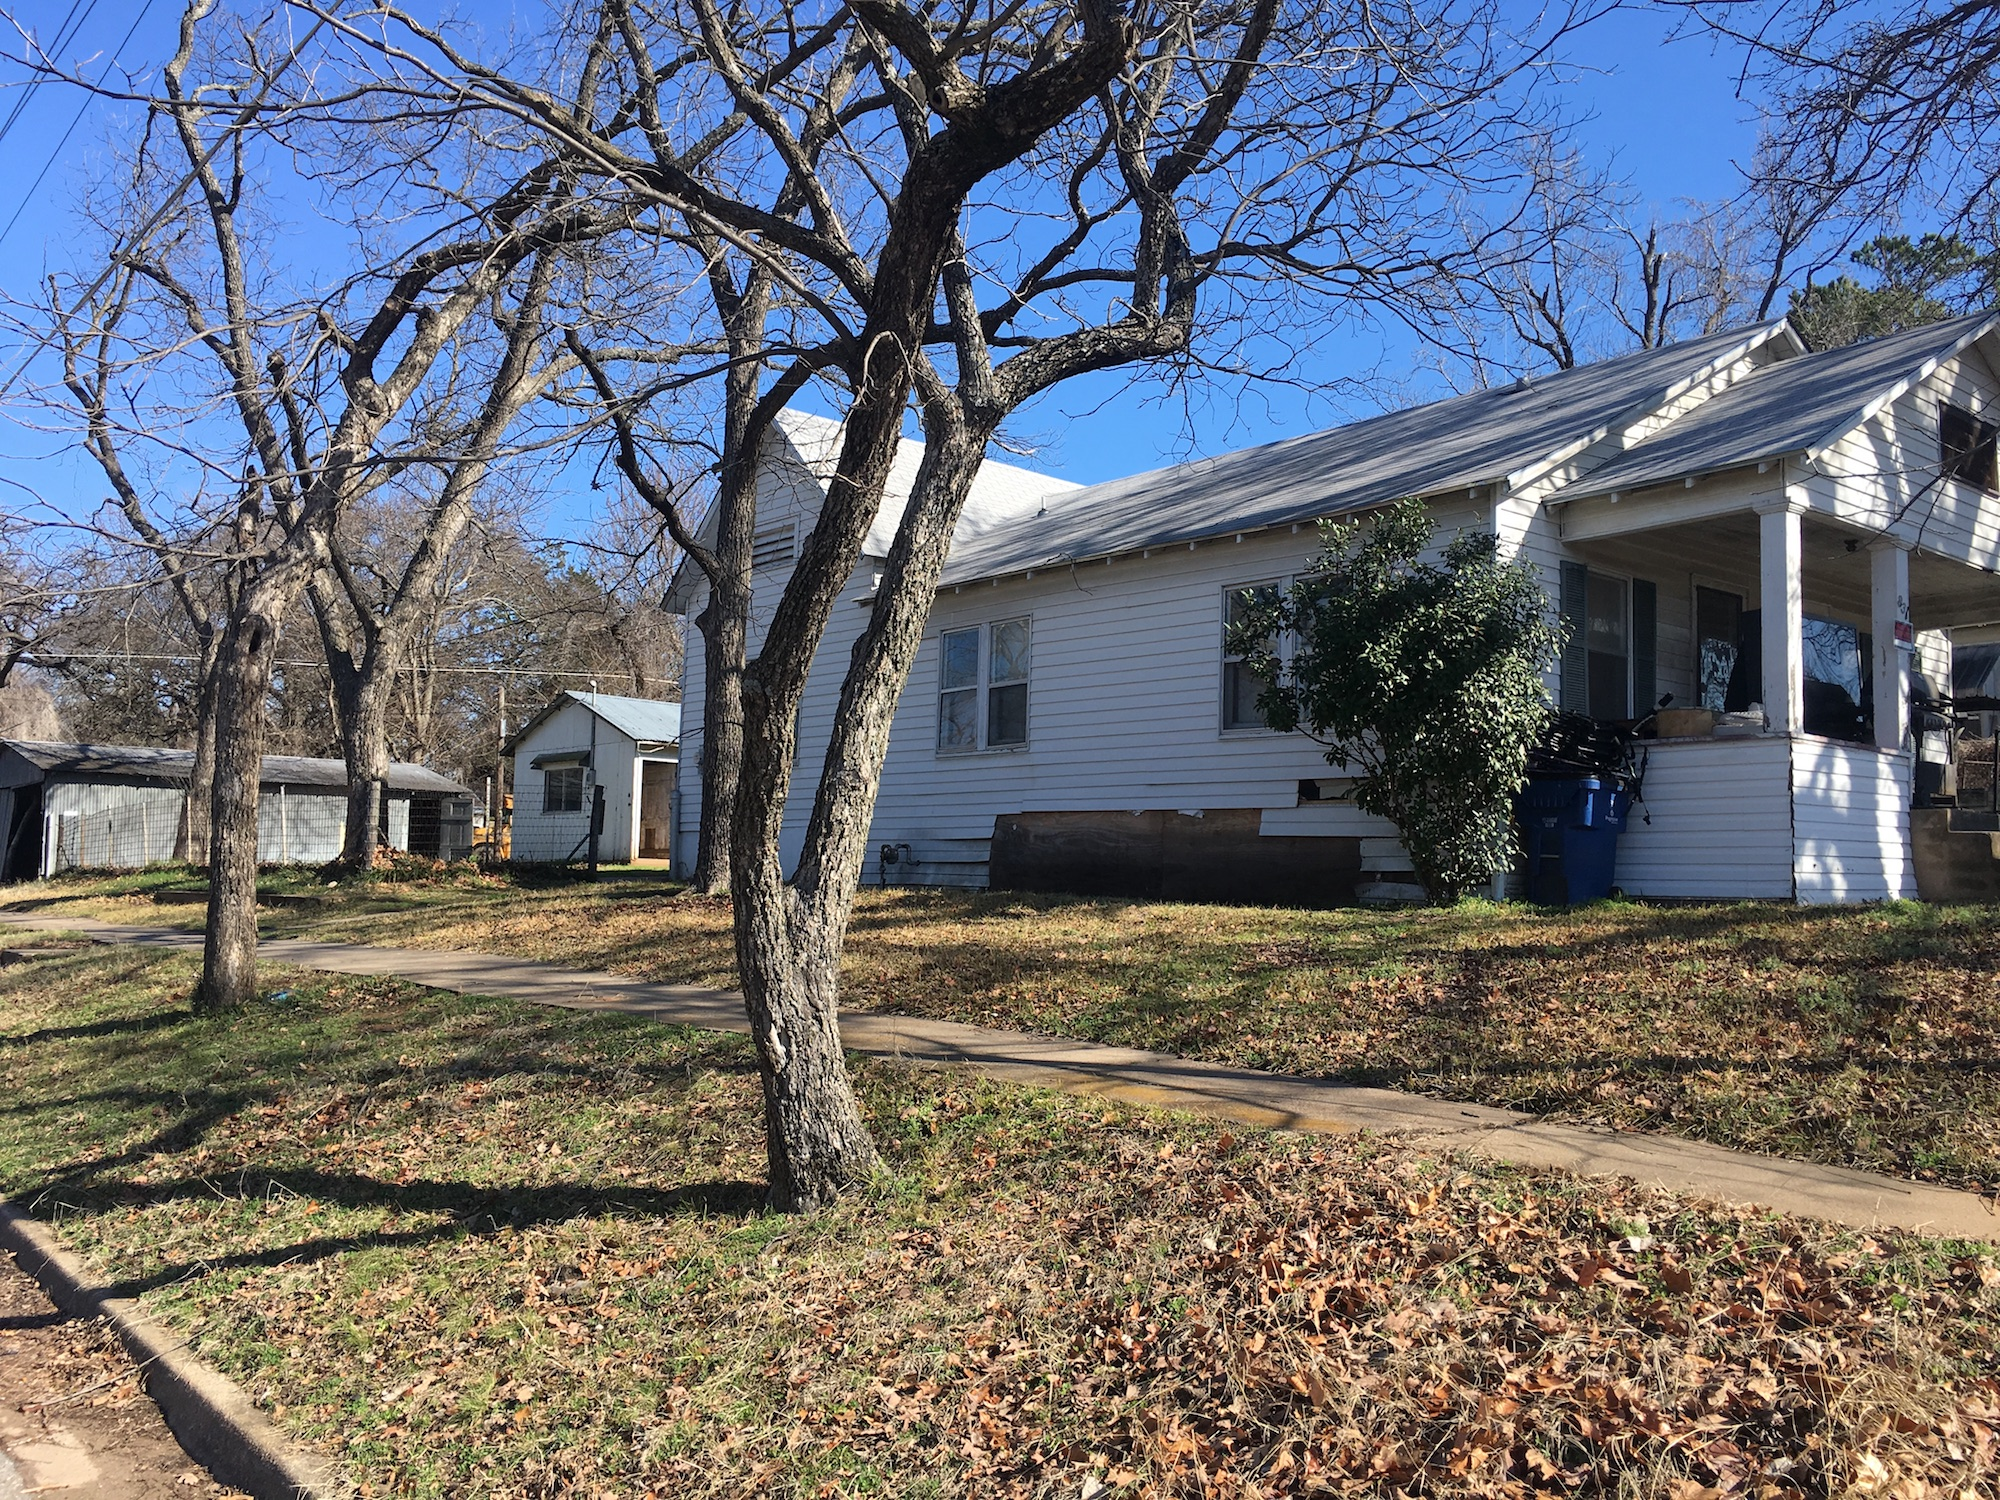 Short or Long Term Investment Remodel, 831 W Texas St, Denison, Texas